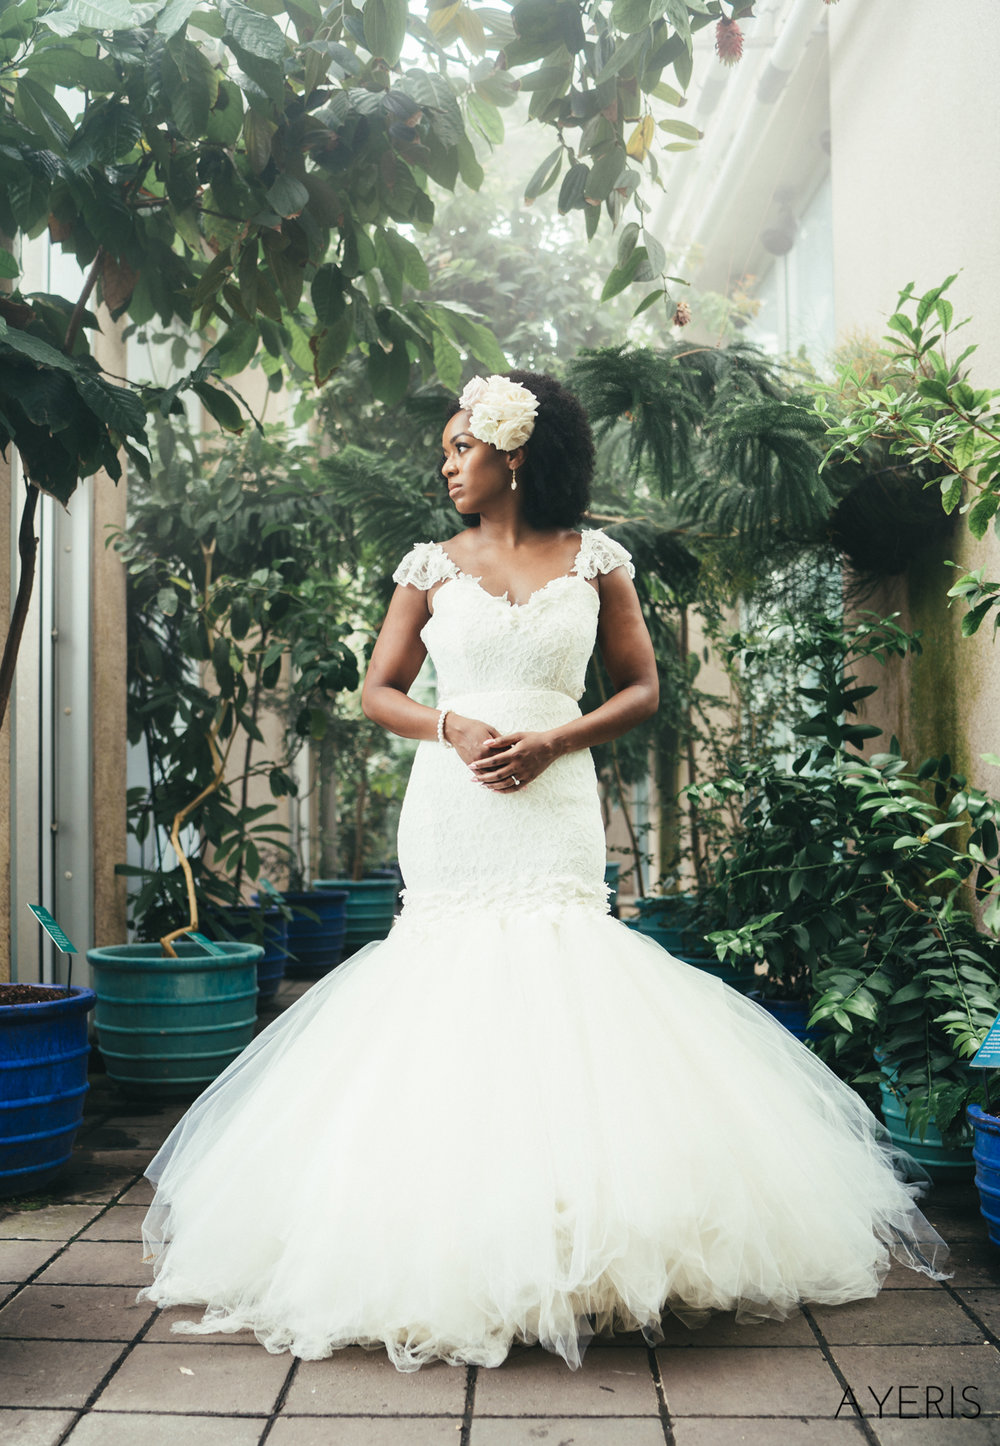 Andrea+Earl's Atlanta Wedding at The Foundry at Puritan Mill by AYERIS Weddings-12.jpg